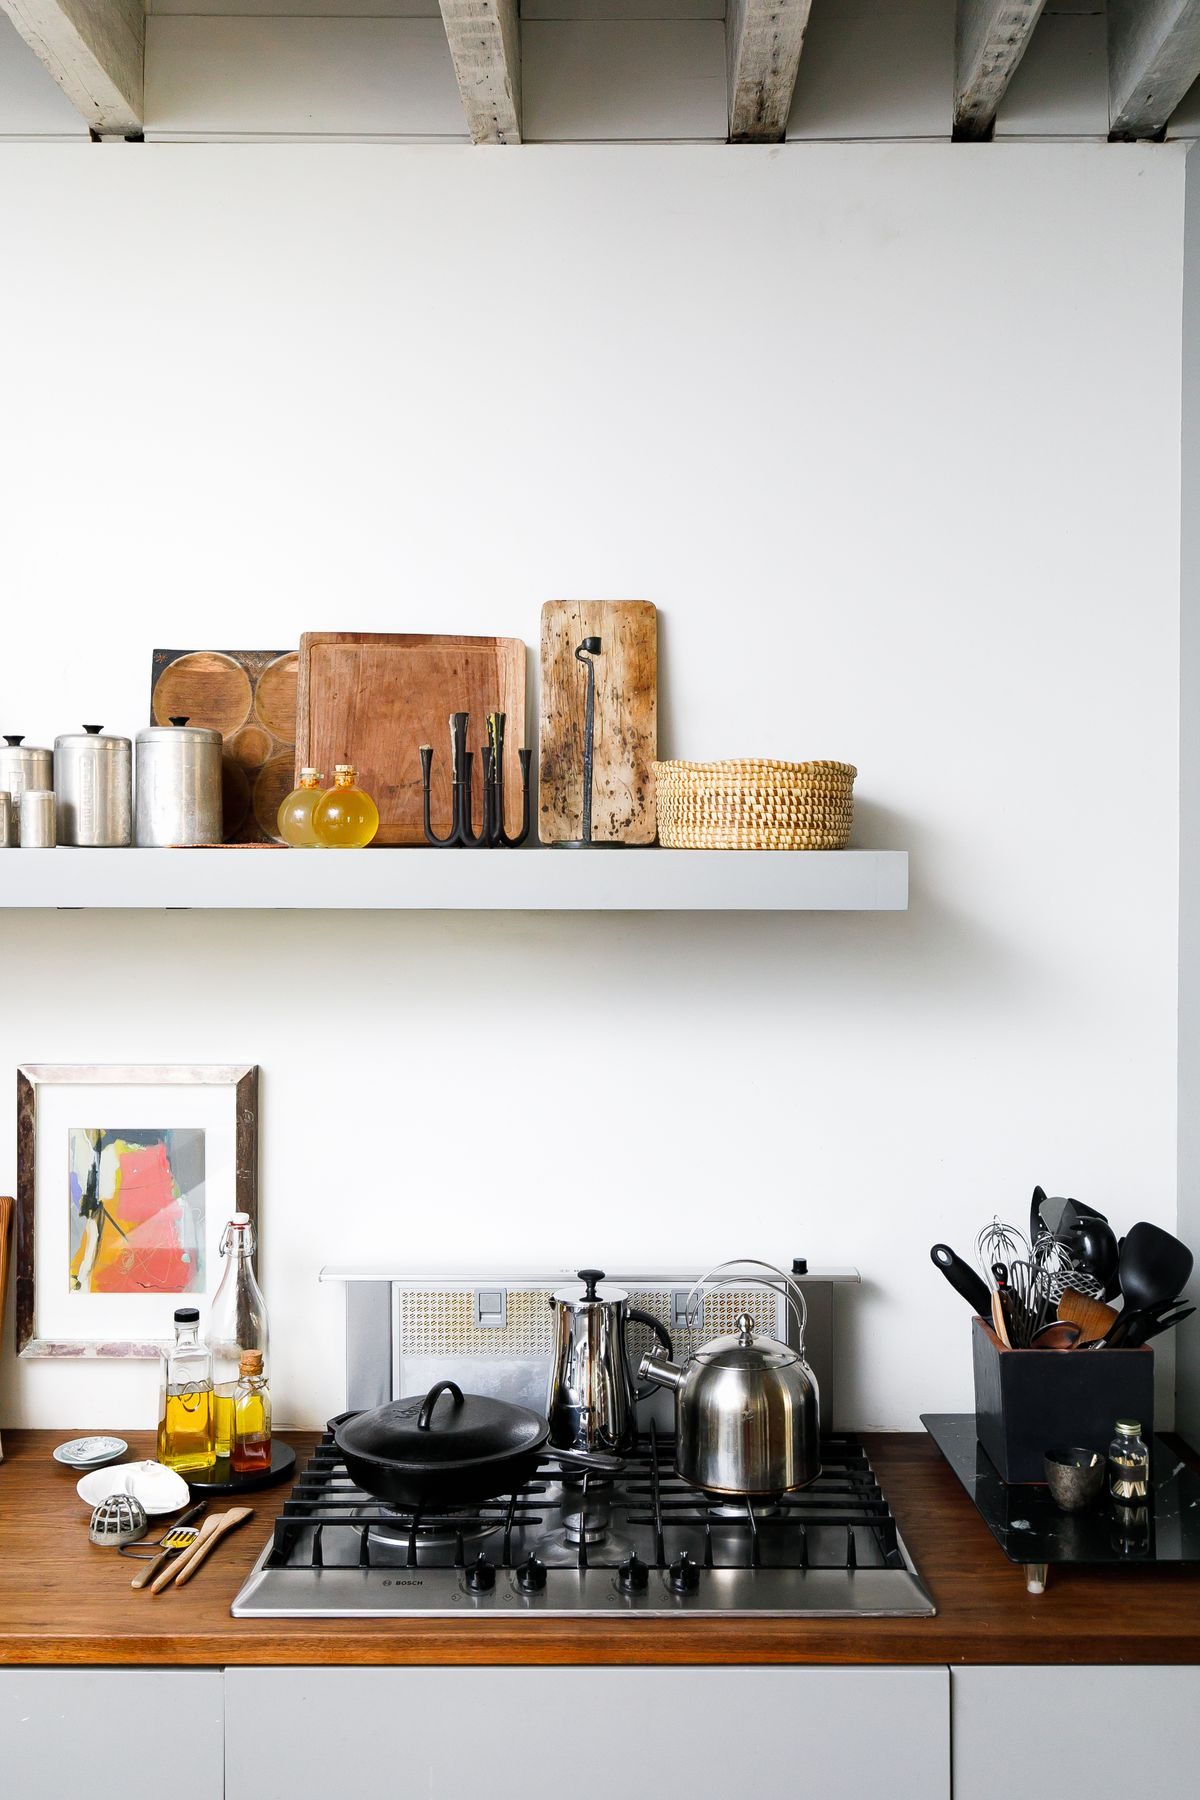 A stovetop with a kettle and a pan. Above the stovetop is a floating bookshelf with a collection of cutting boards and containers..